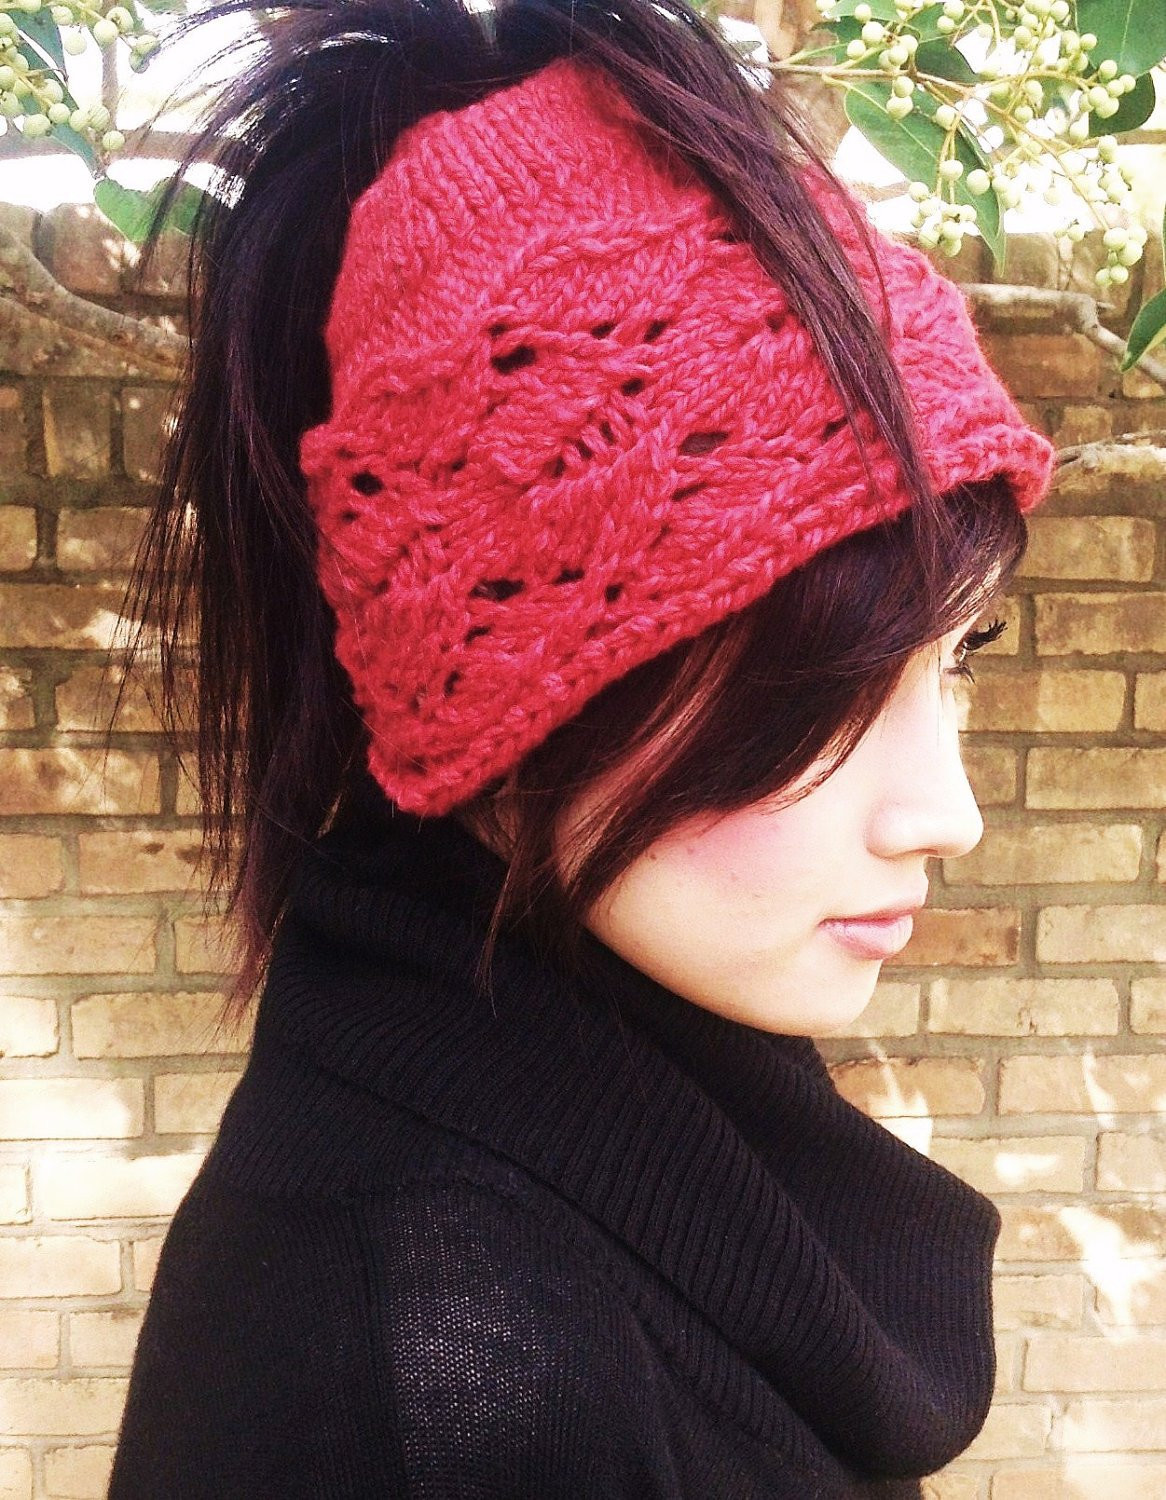 Ponytail Hat Pattern Unique Knitting Pattern Ponytail Hat Knit Hat Teens Women Cable Of Wonderful 46 Pictures Ponytail Hat Pattern